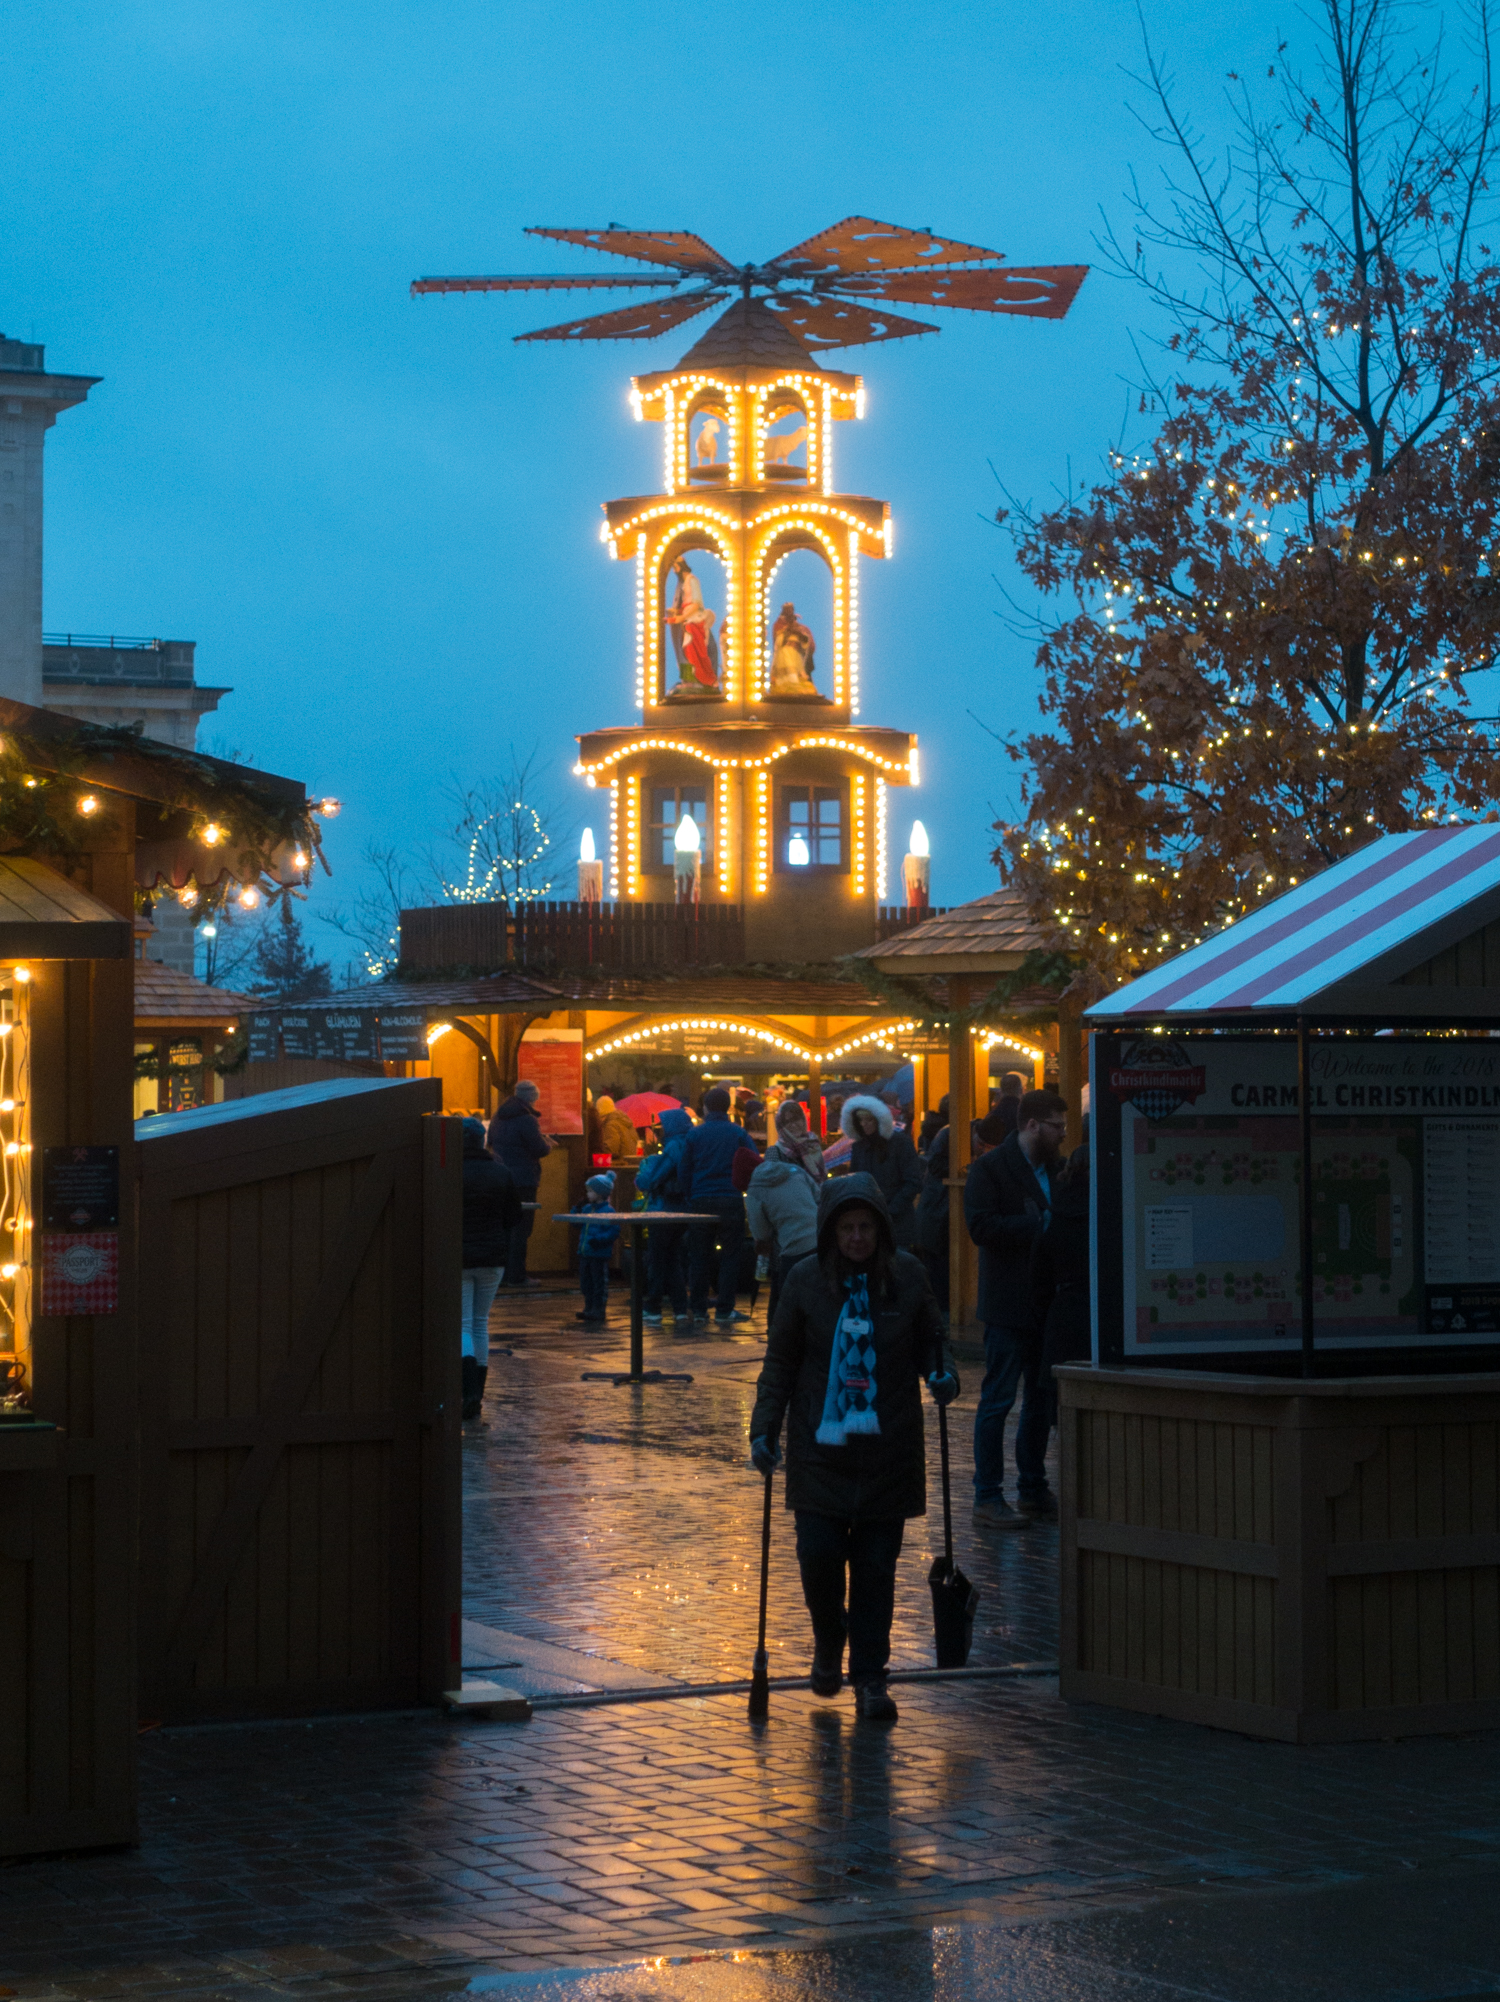 This year the Carmel Christkindlmarkt partnered with Steinbach to bring the German Glühwein Pyramide.